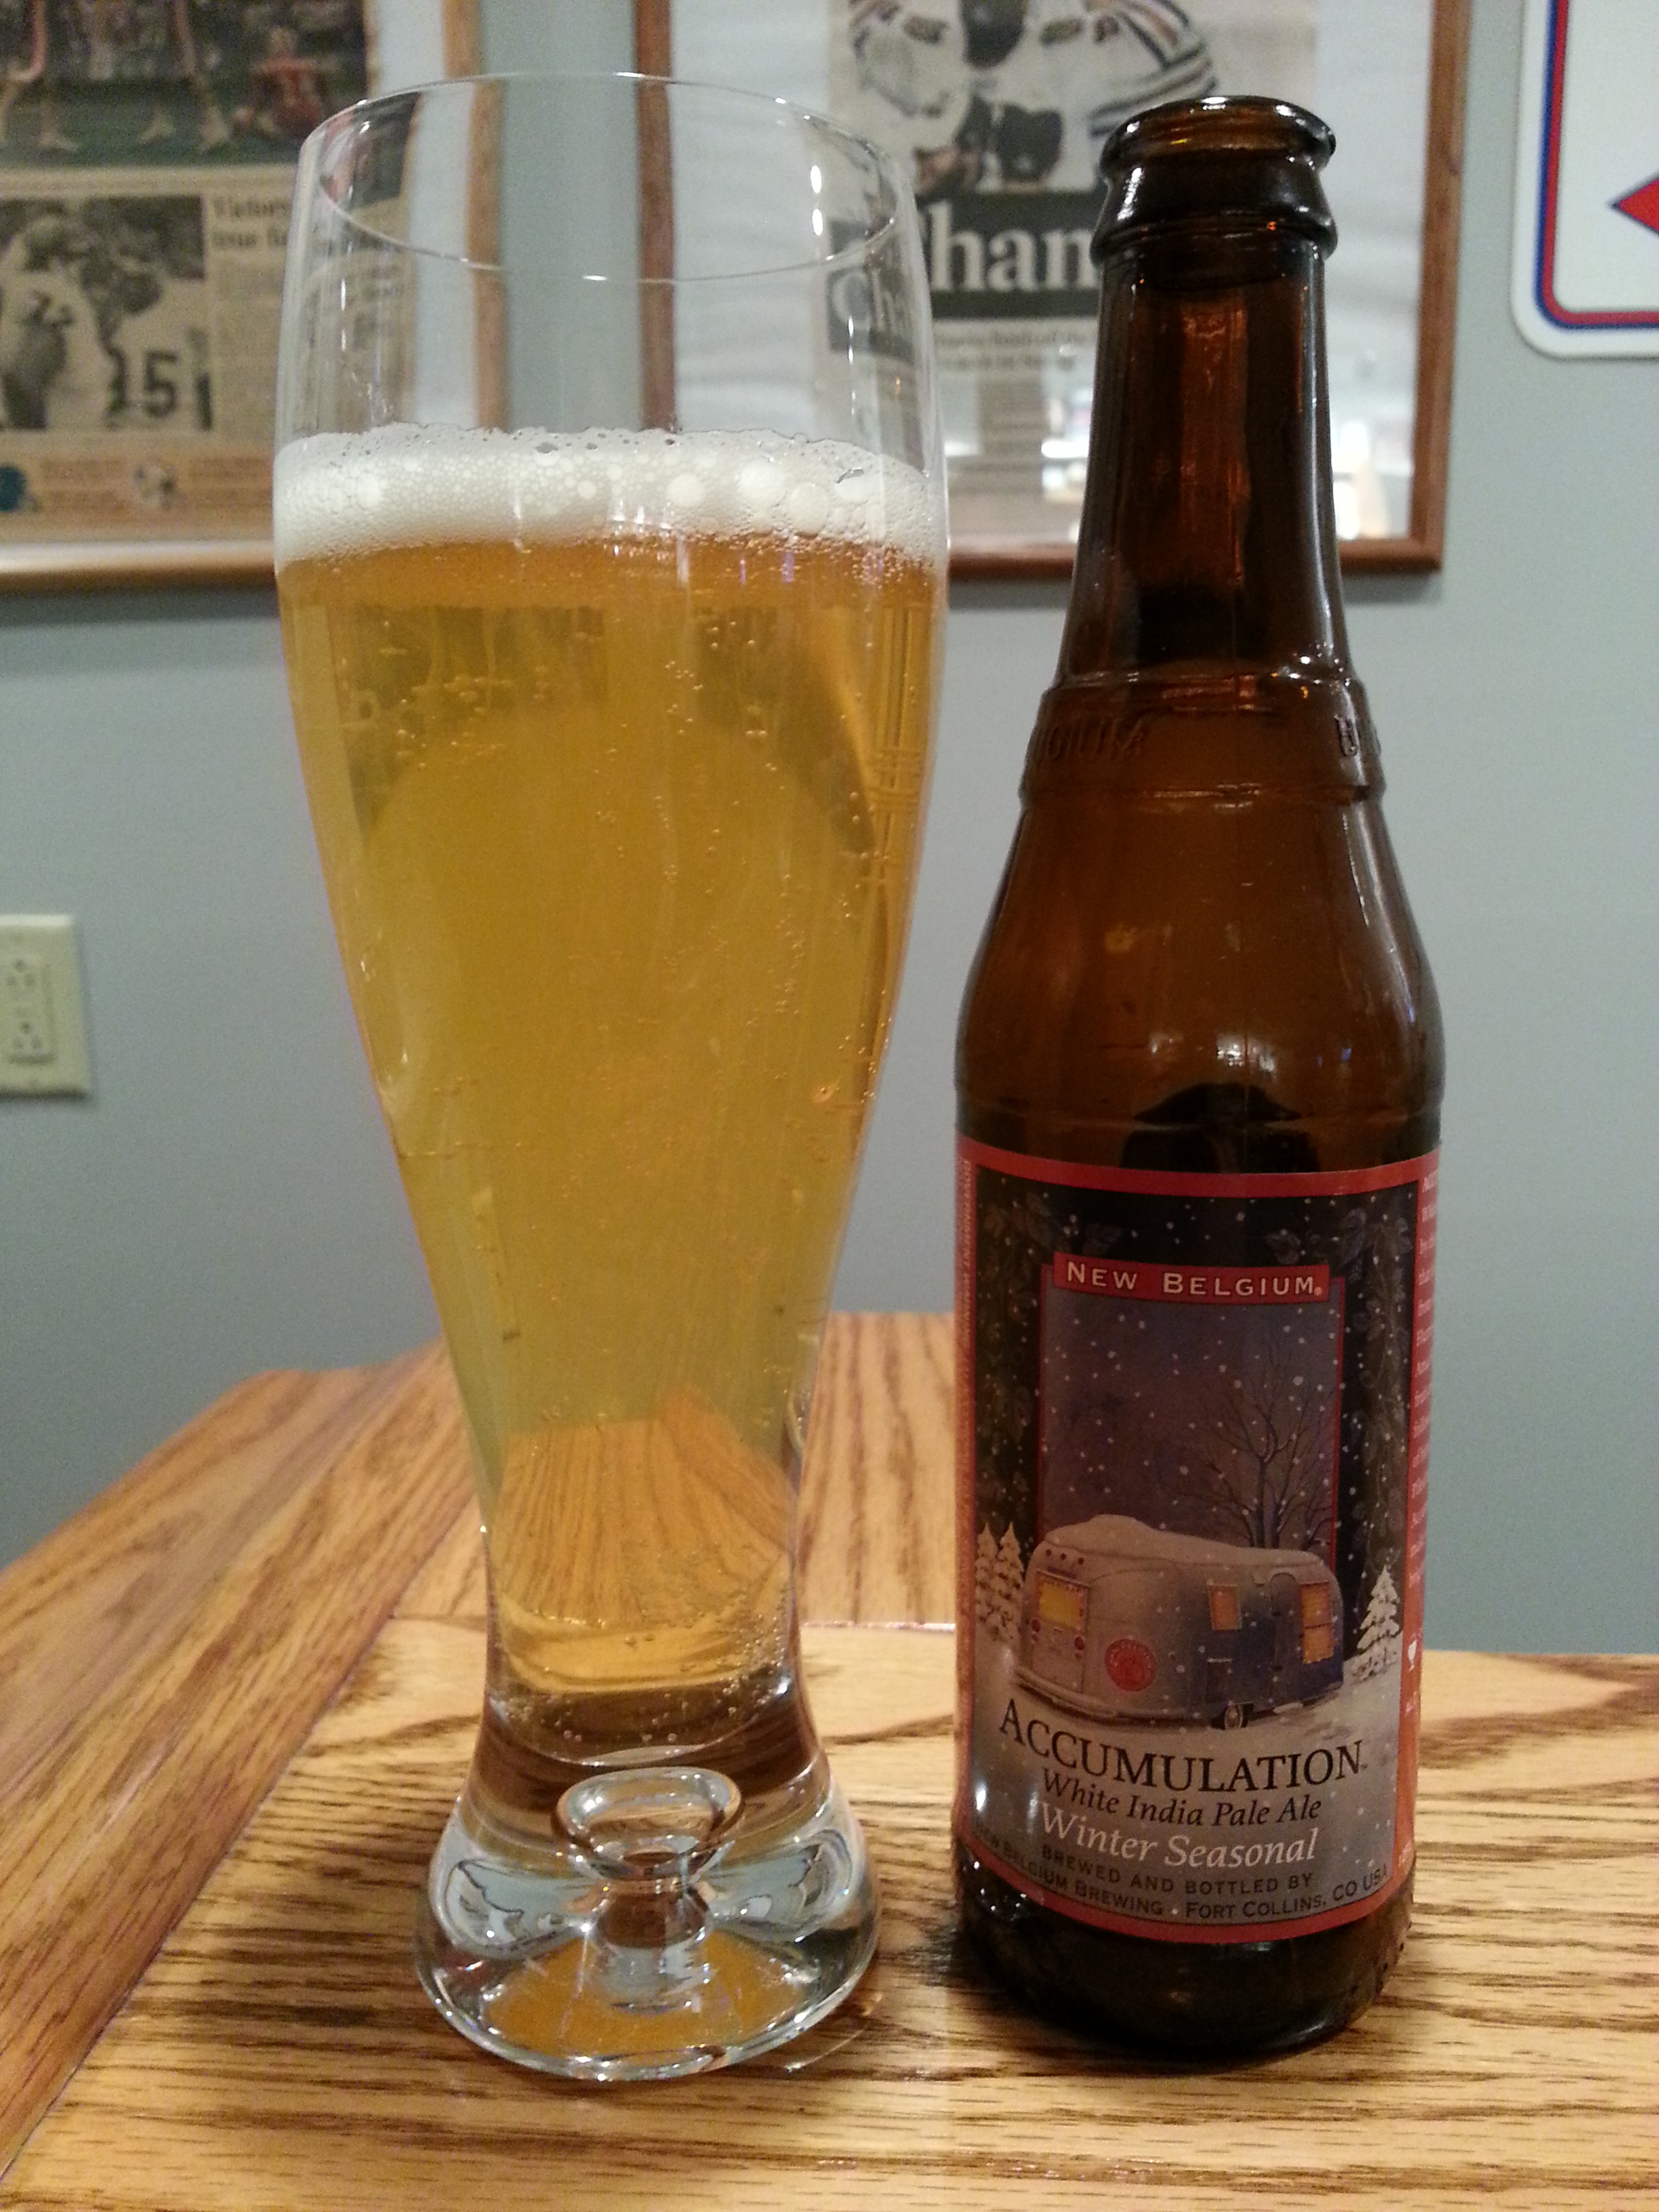 New Belgium Accumulation White IPA